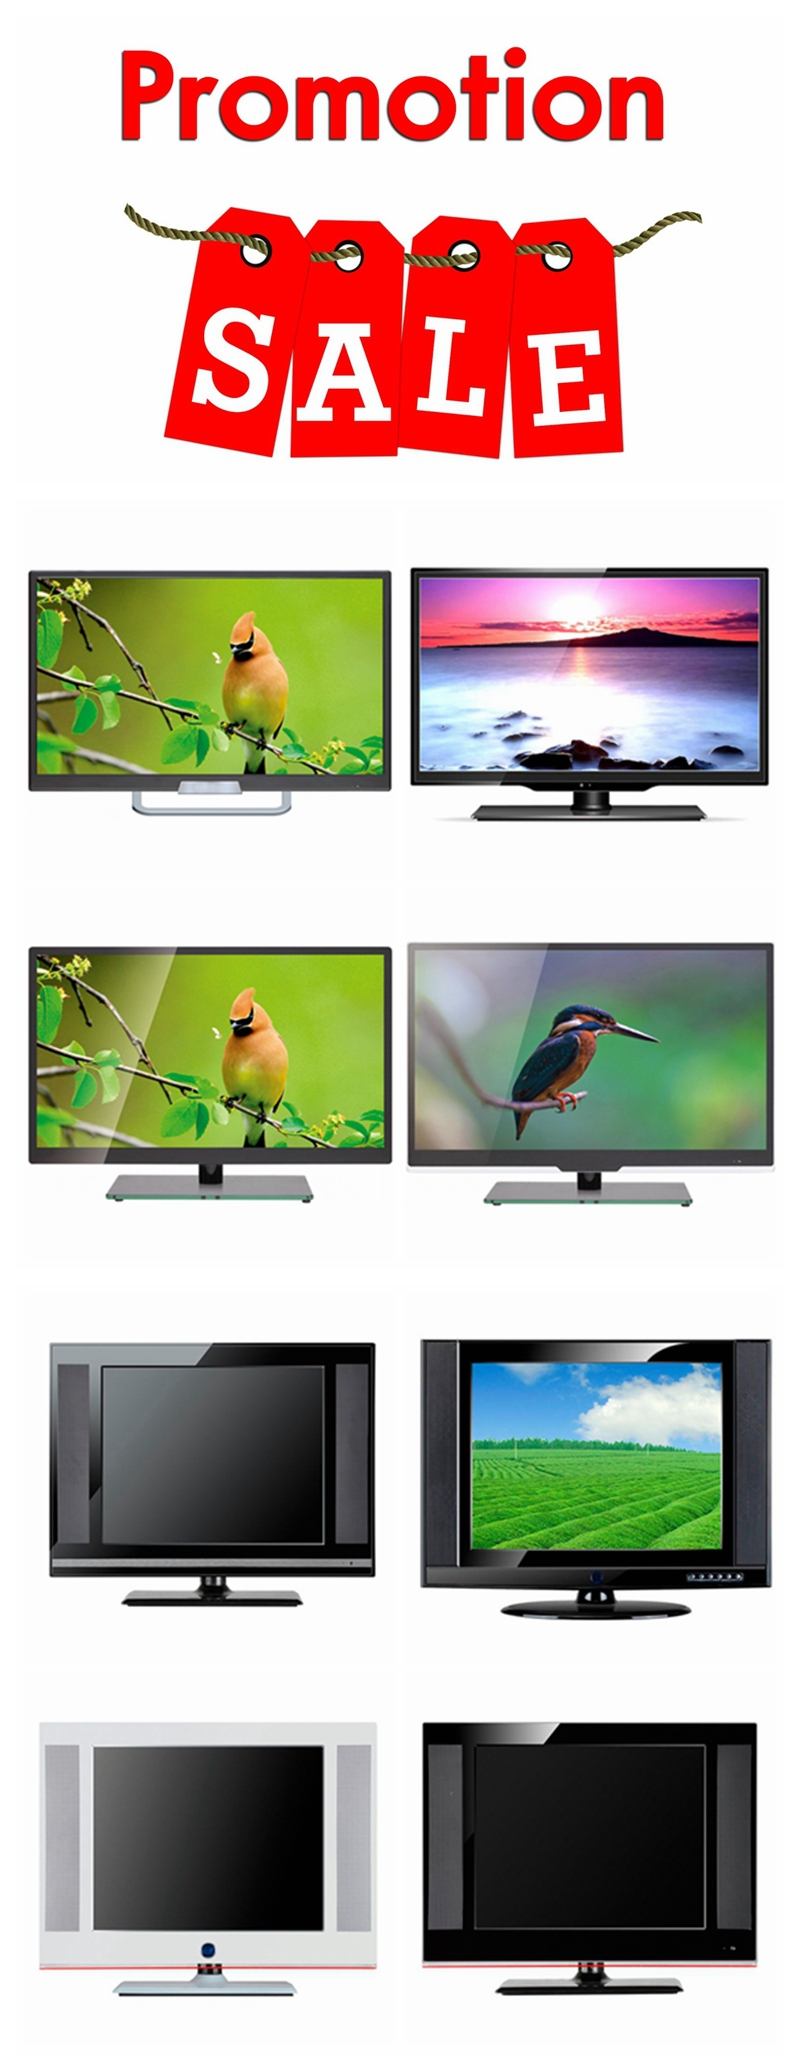 ODM/OEM Cheap 15 16 17 19 20 22 24 Inch Led Tv/Lcd Tv With A Grade USB/VGA/FHD AC+DC 12V SKD CKD